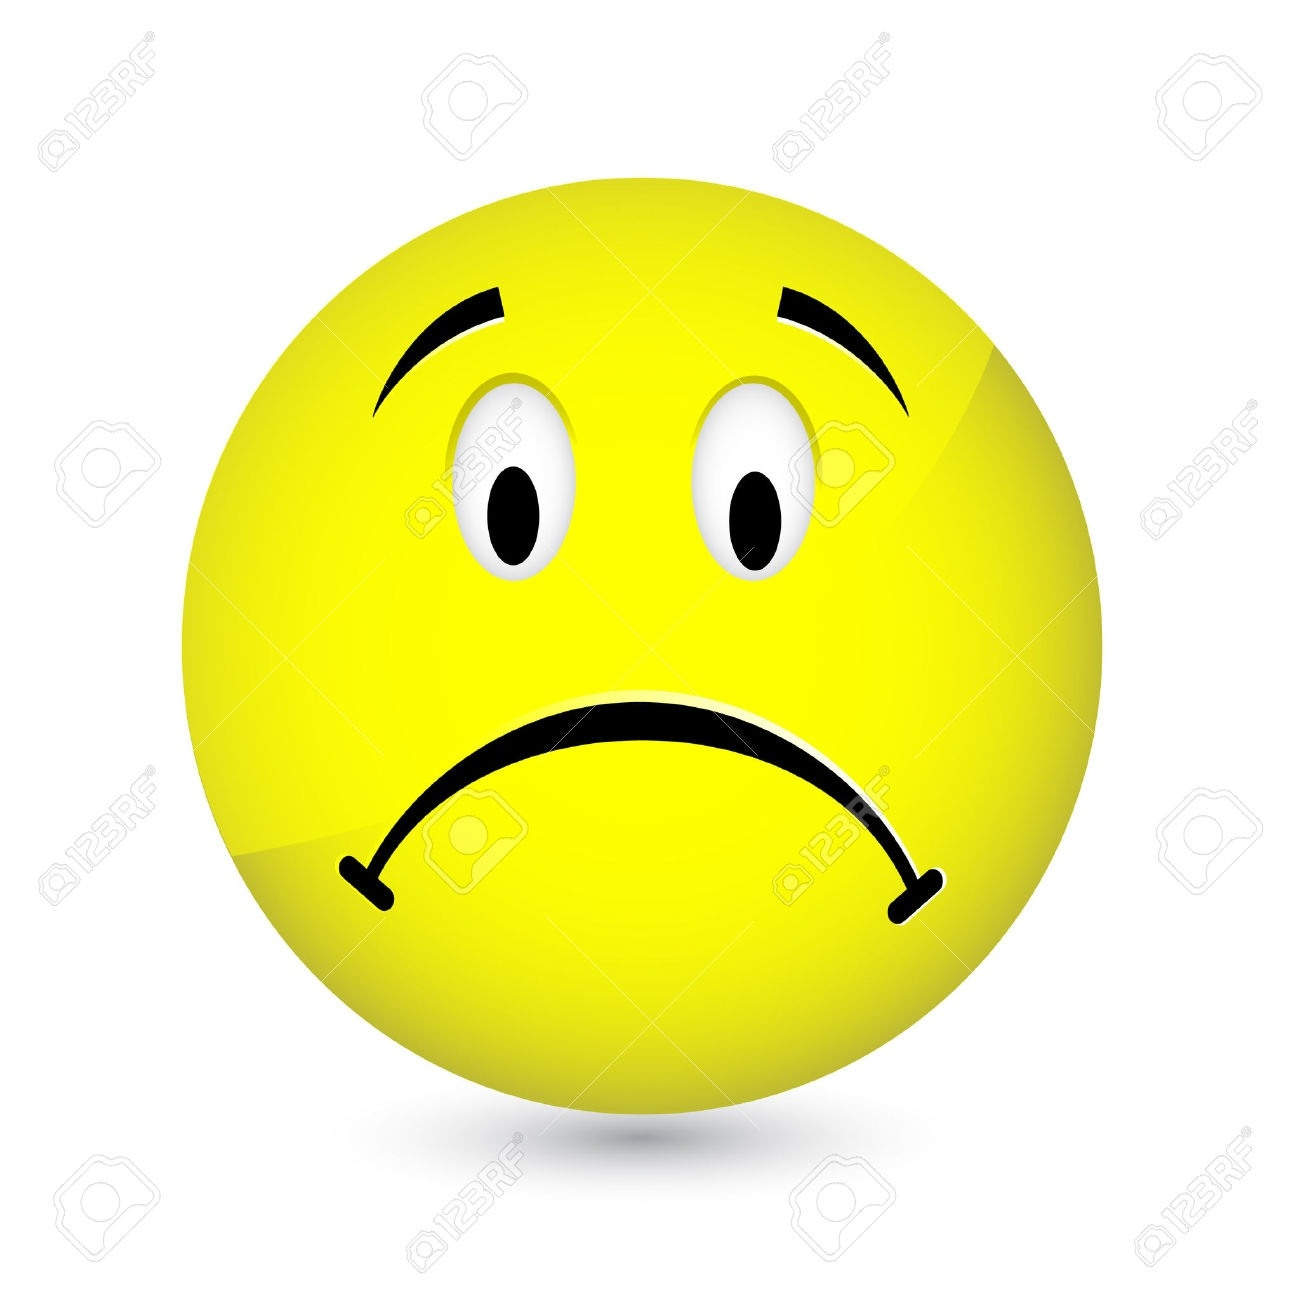 Crying smiley face clipart graphic free download Crying Smiley Face Clipart | Free Download Best Crying Smiley Face ... graphic free download